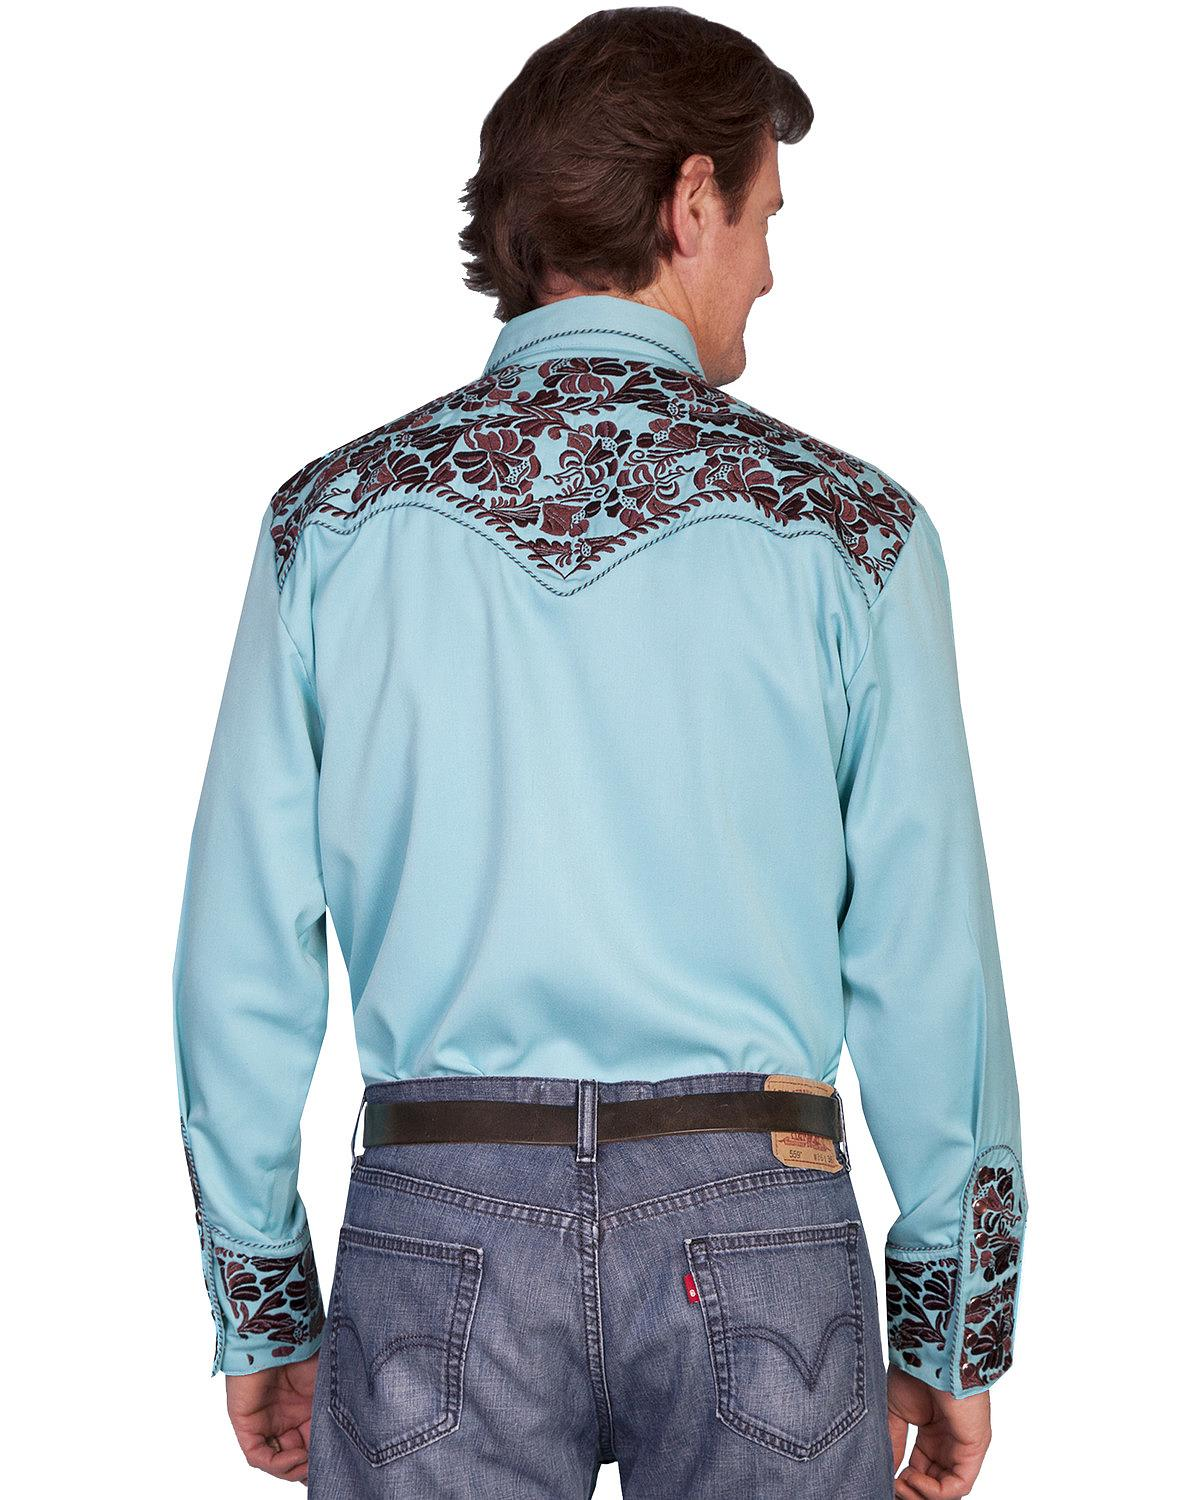 Scully Men 39 S Turquoise Embroidery Retro Western Shirt Big